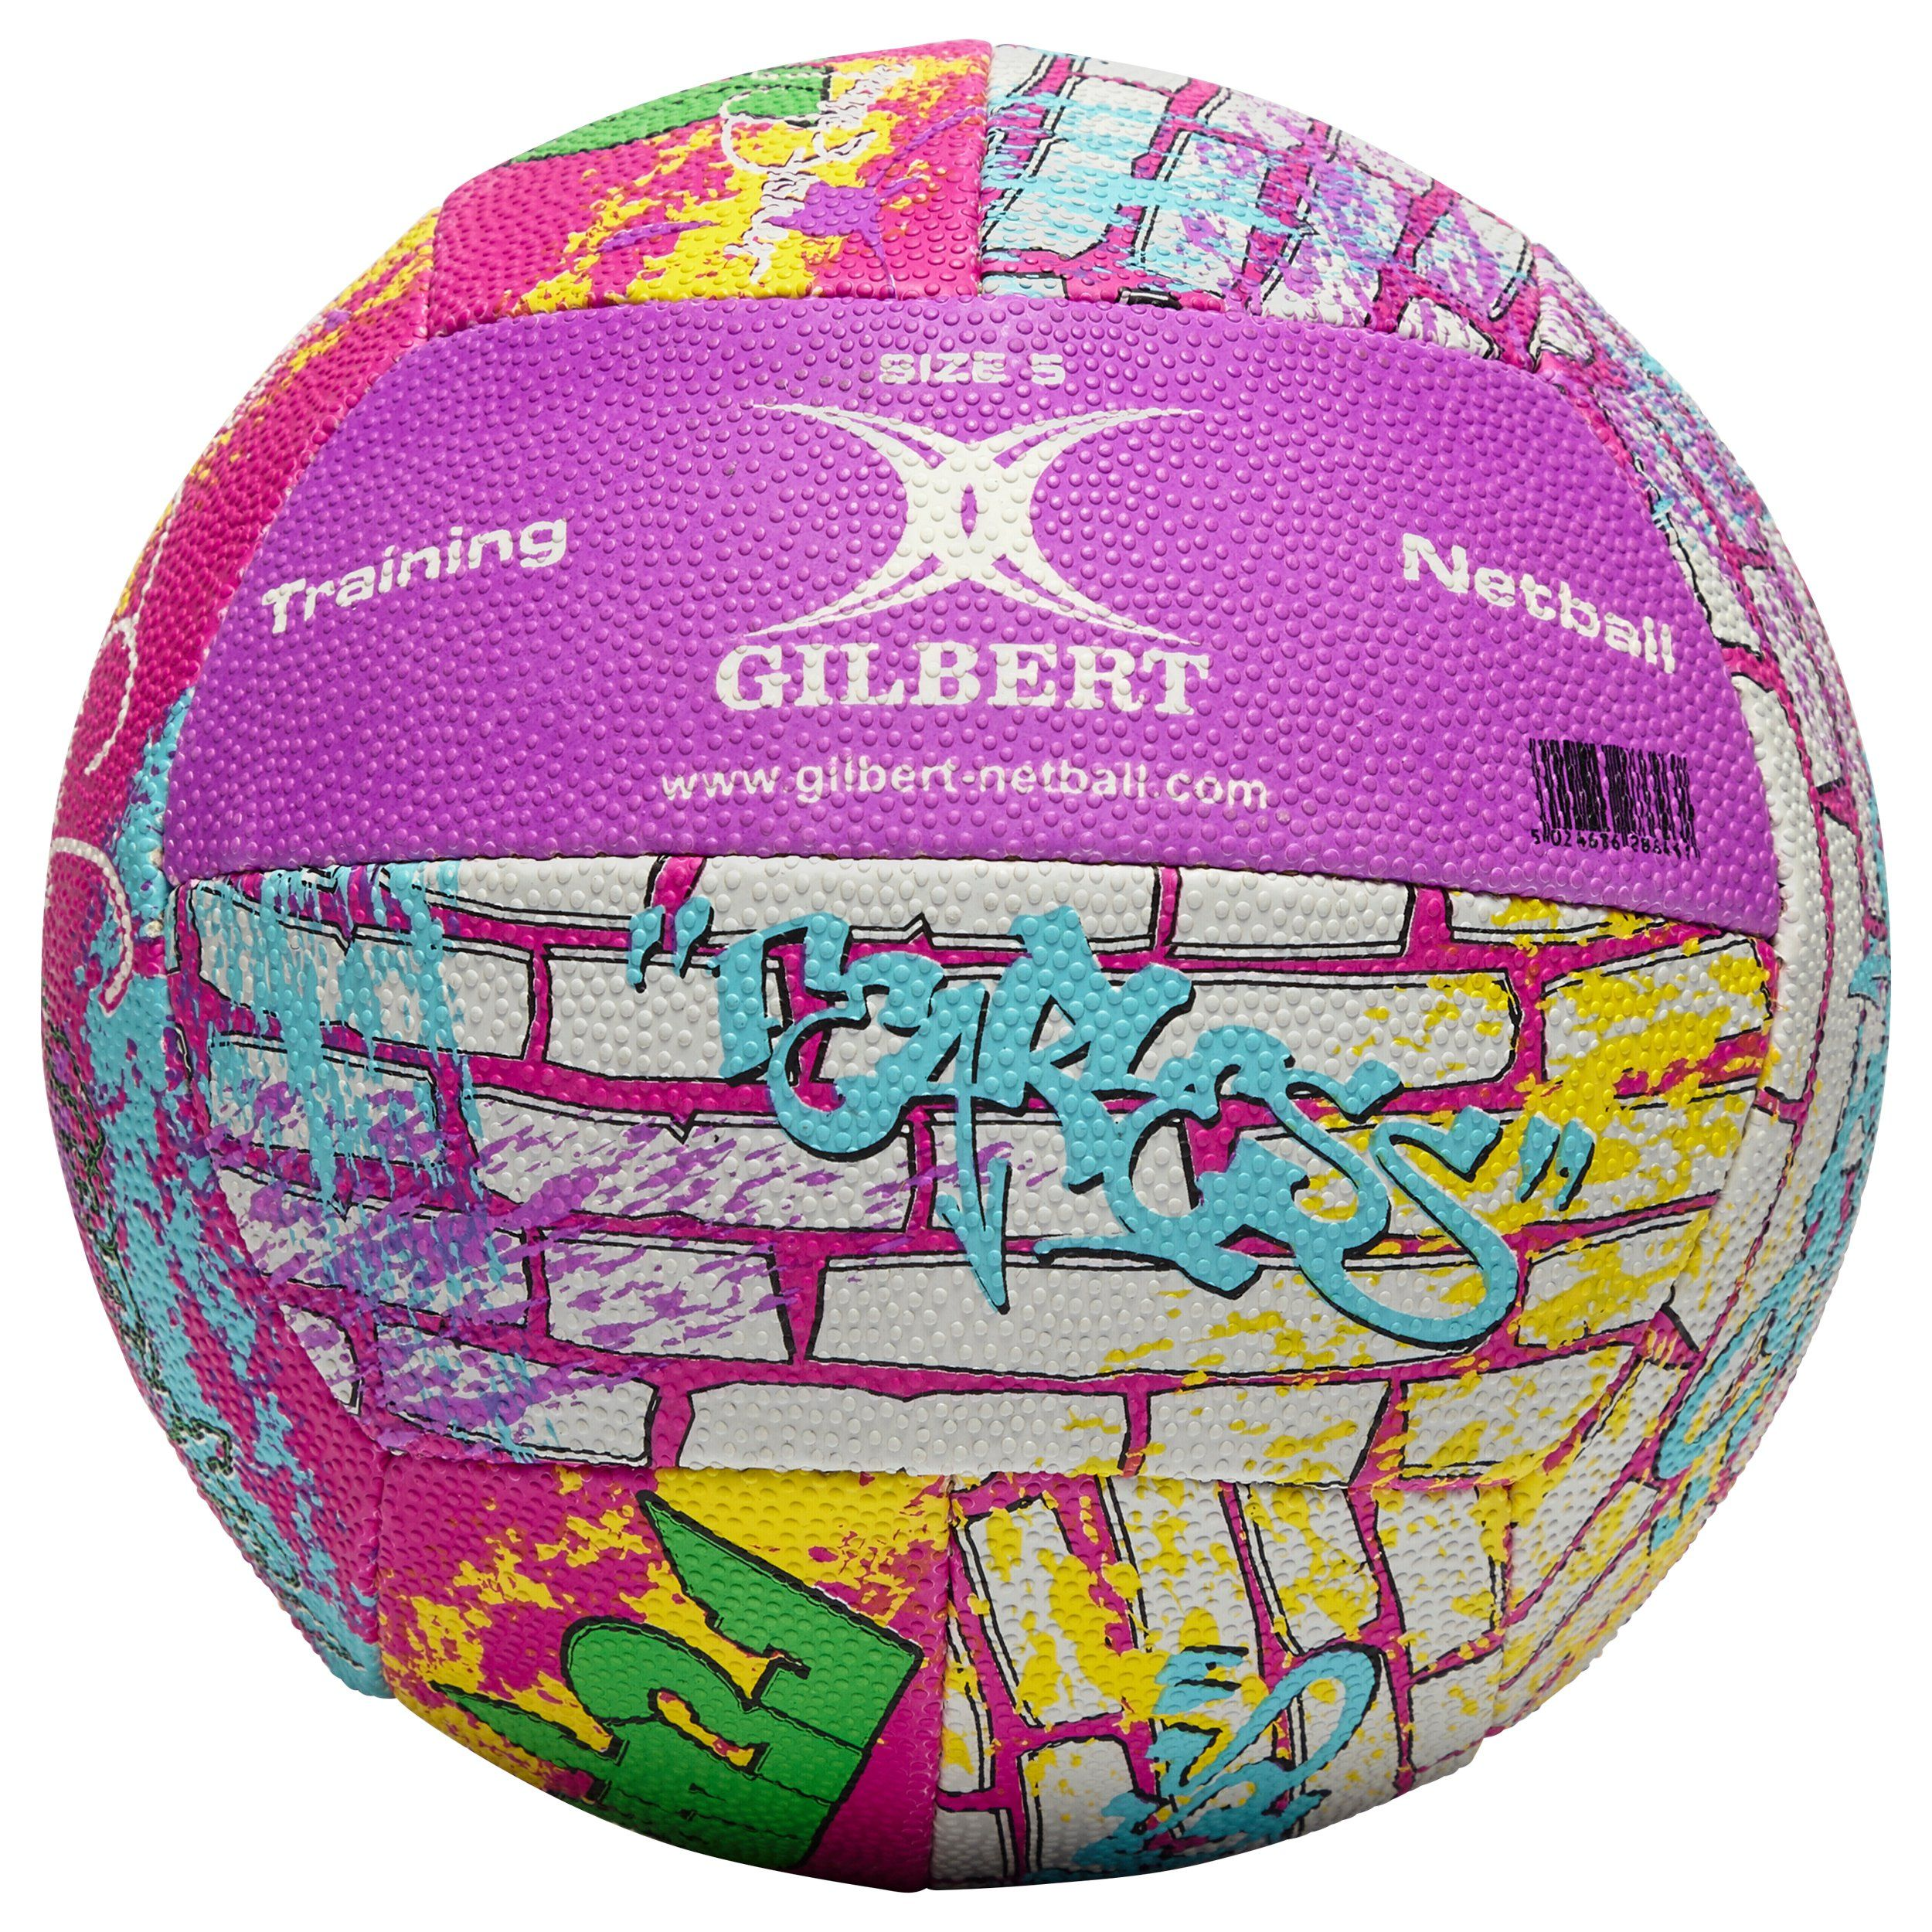 Gilbert George Fisher Signature Training Netball